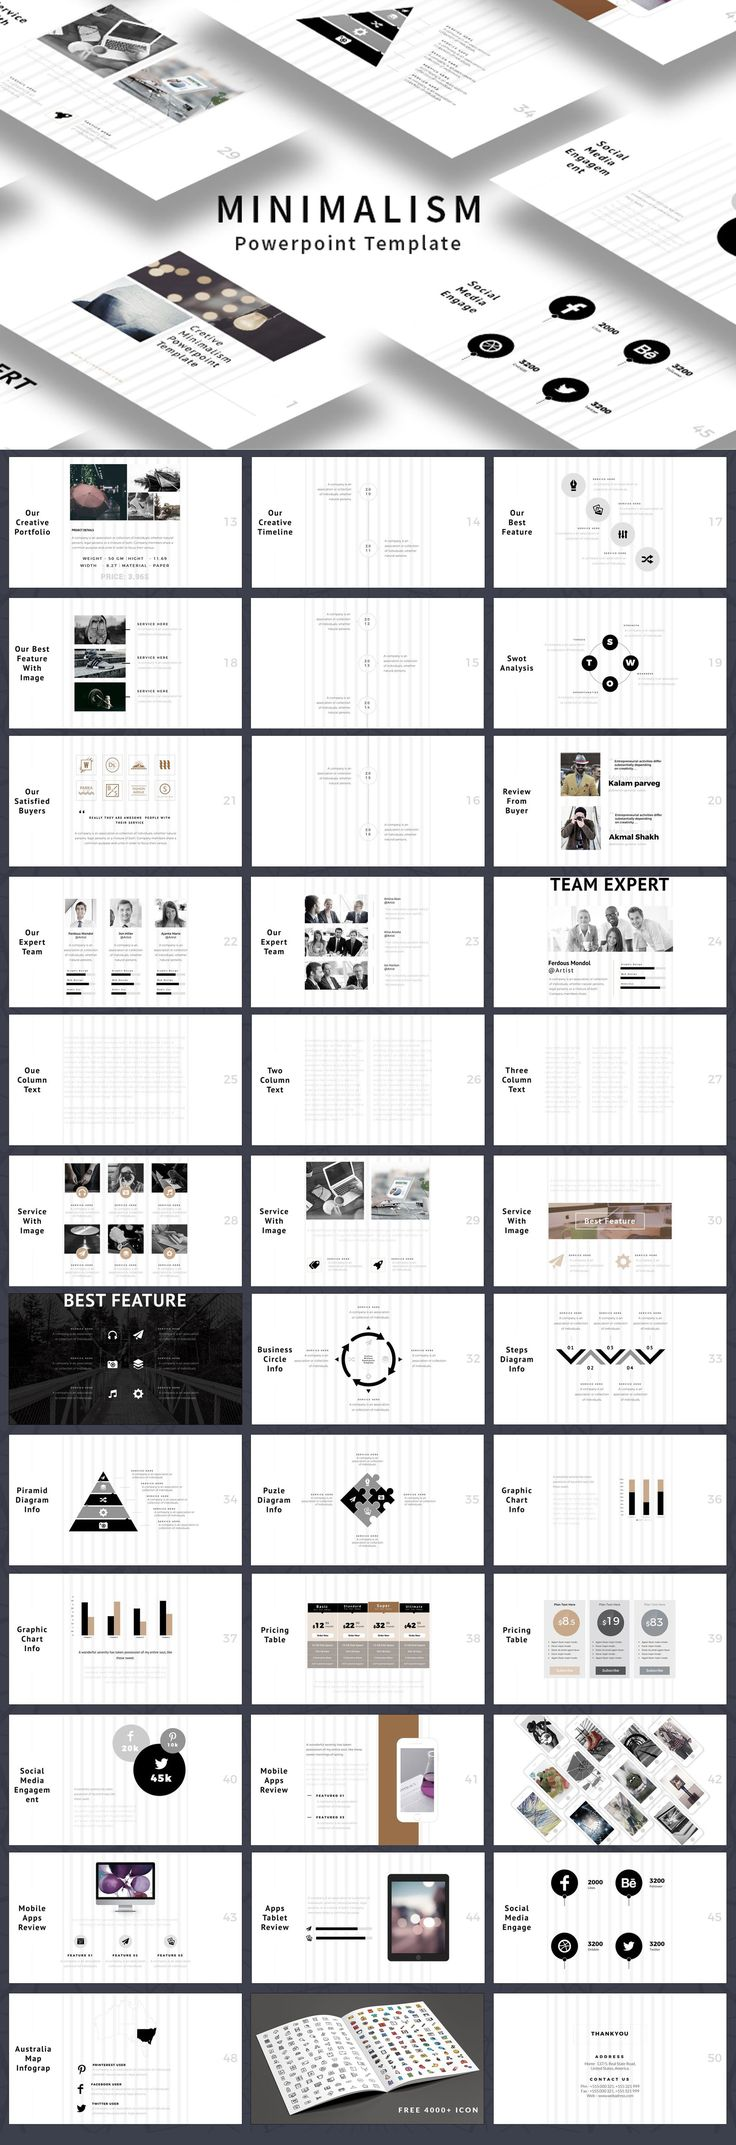 42 best Math Powerpoint Templates images on Pinterest | Business ...